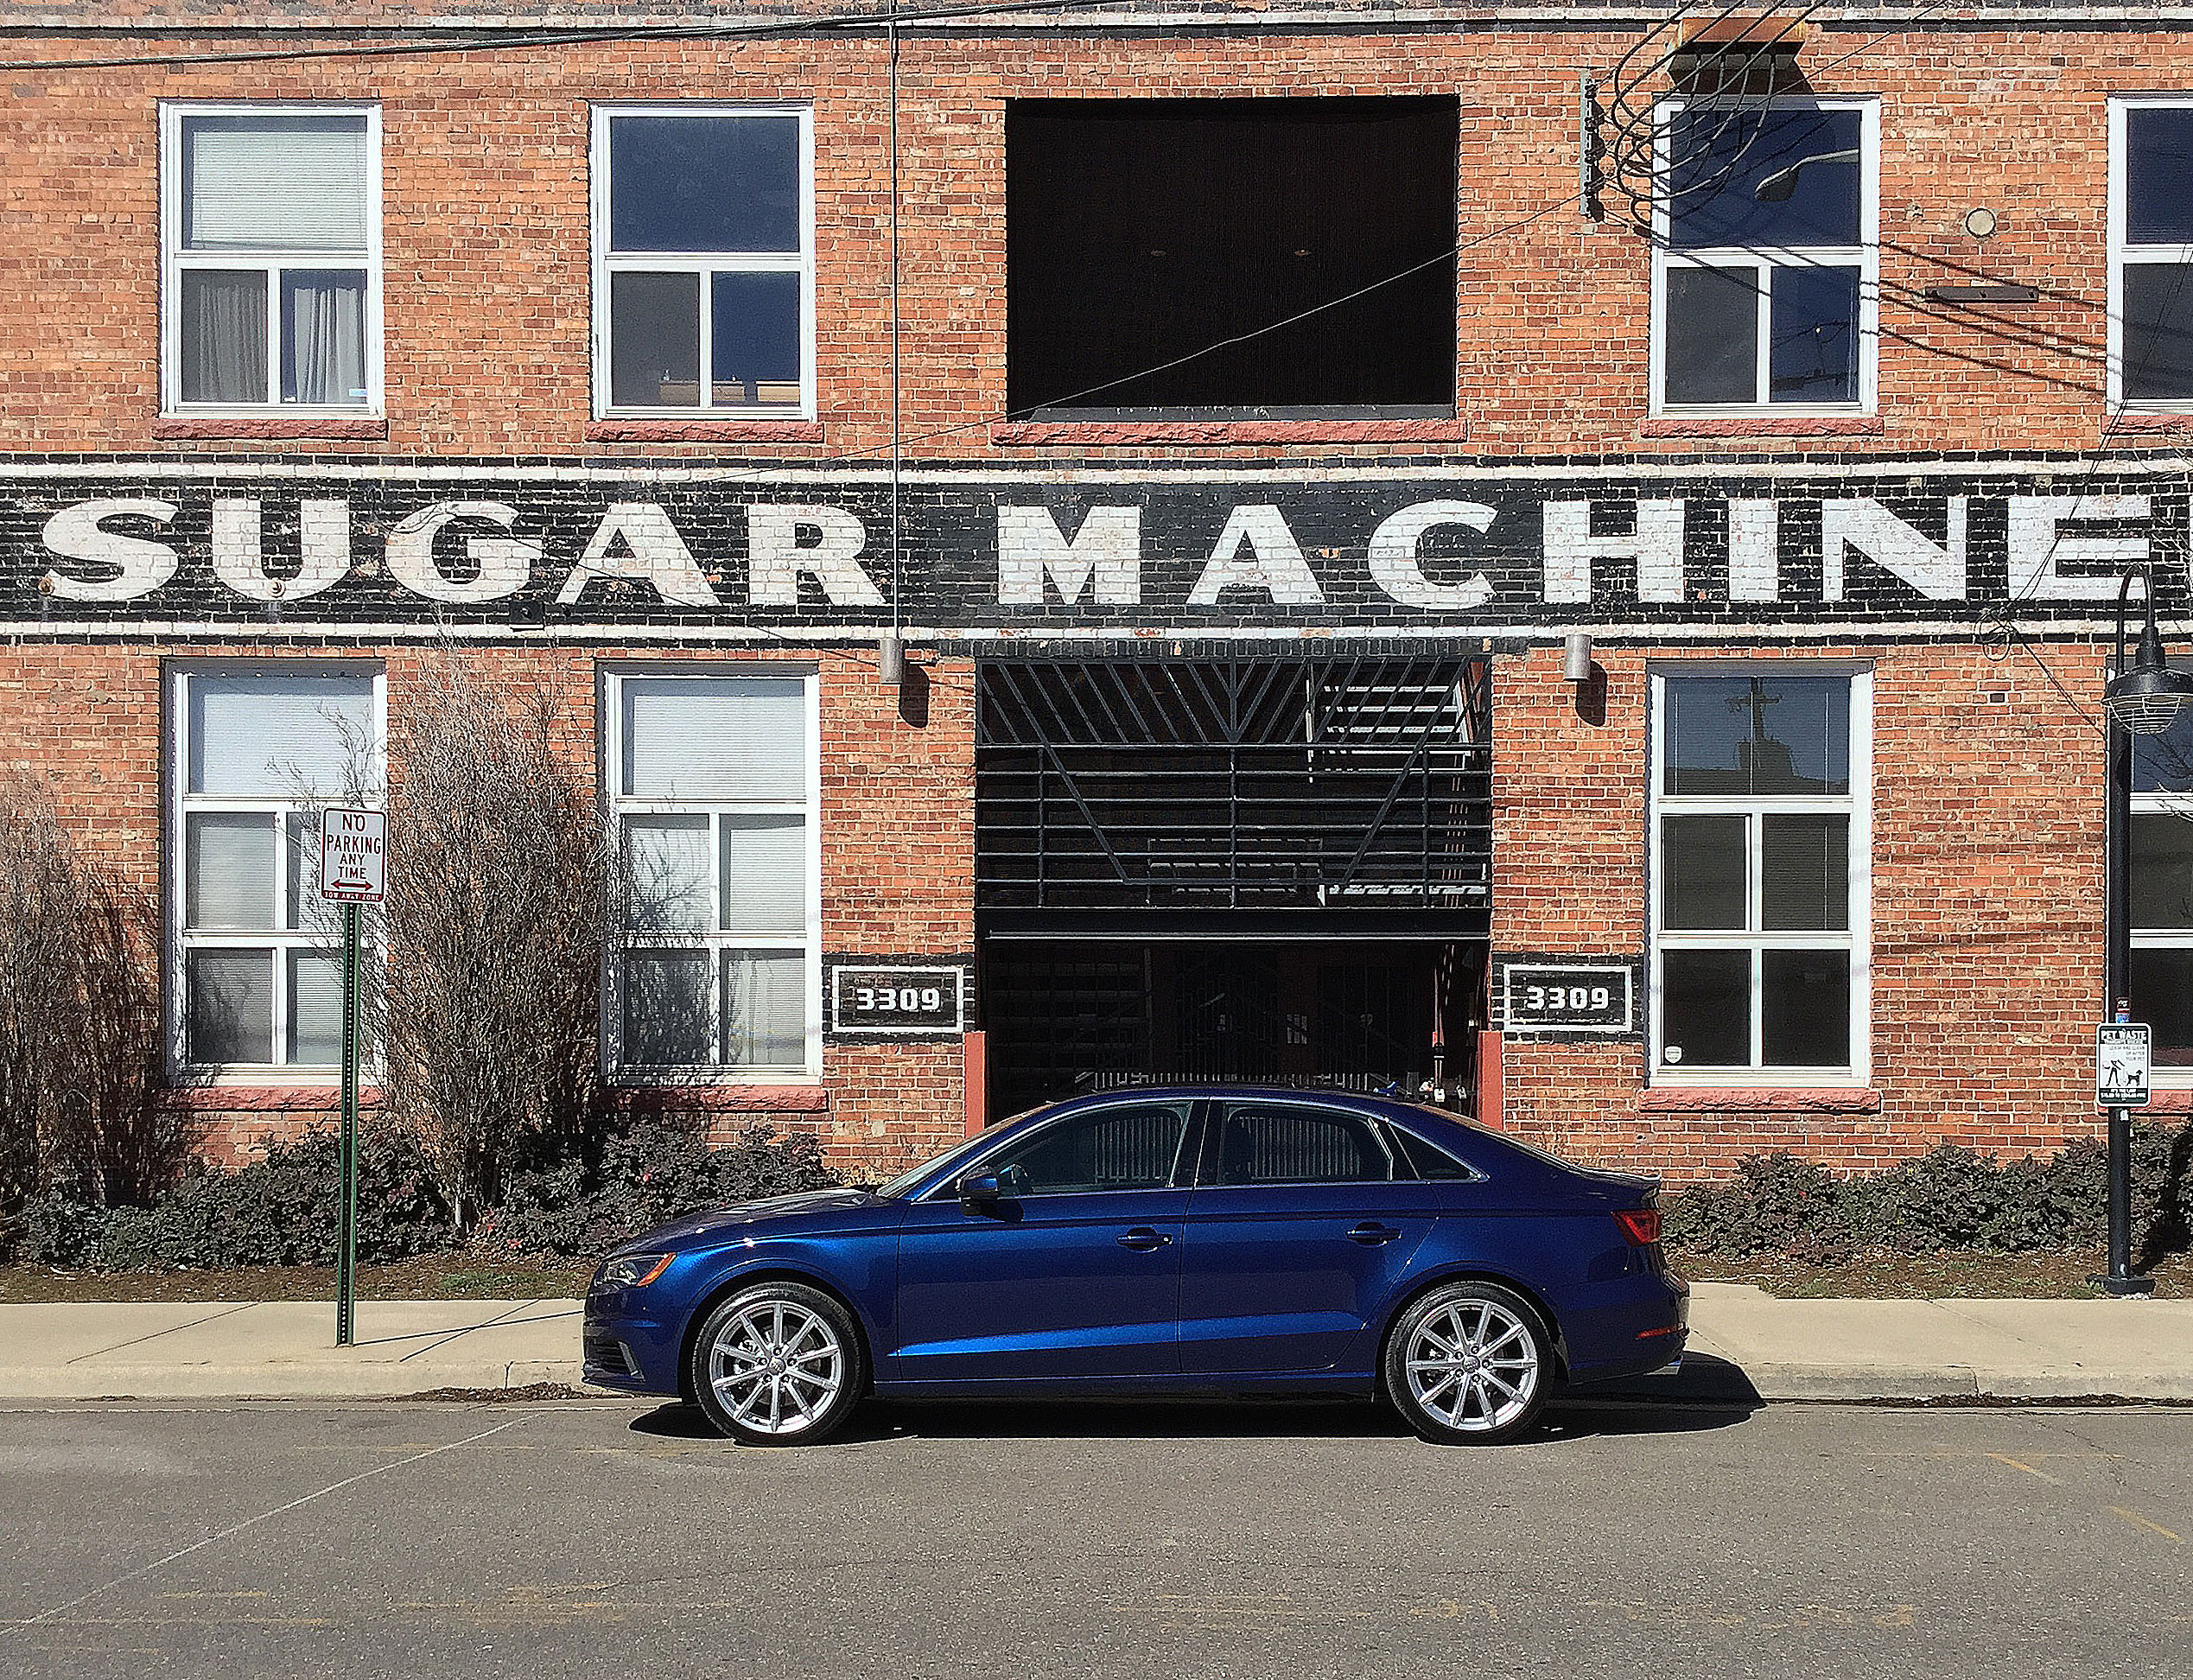 The Audi A3 in front of a building entrance in Denver's RiNo Art District.